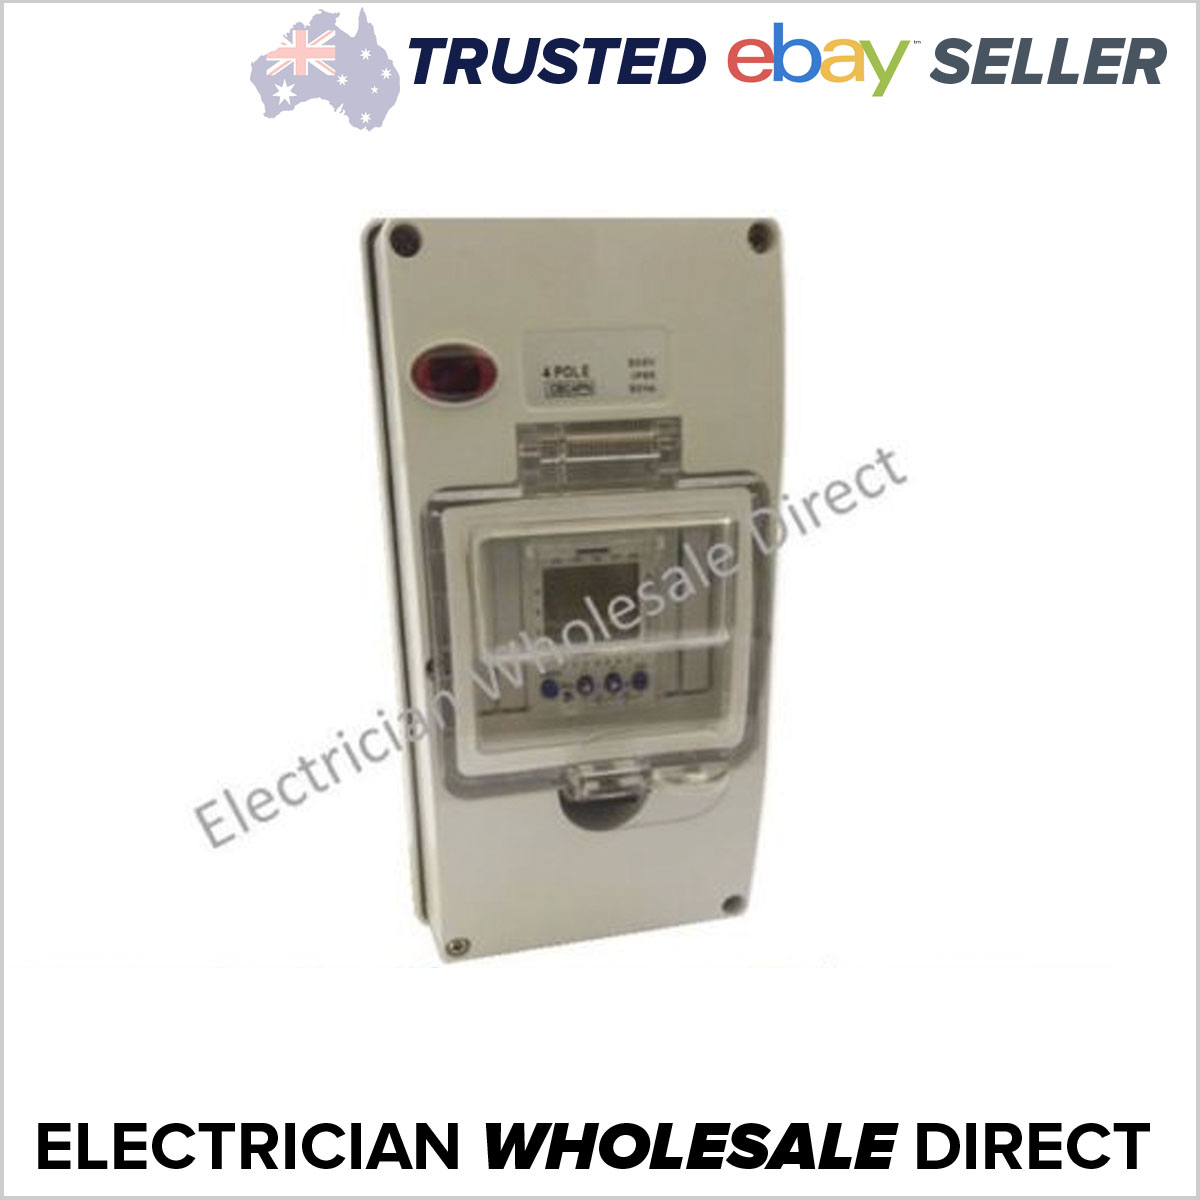 2 Channel Digital Time Clock X1 In Weatherproof 4 Pole Enclosure Circuit Breaker Timer Ebay Neon Ip66